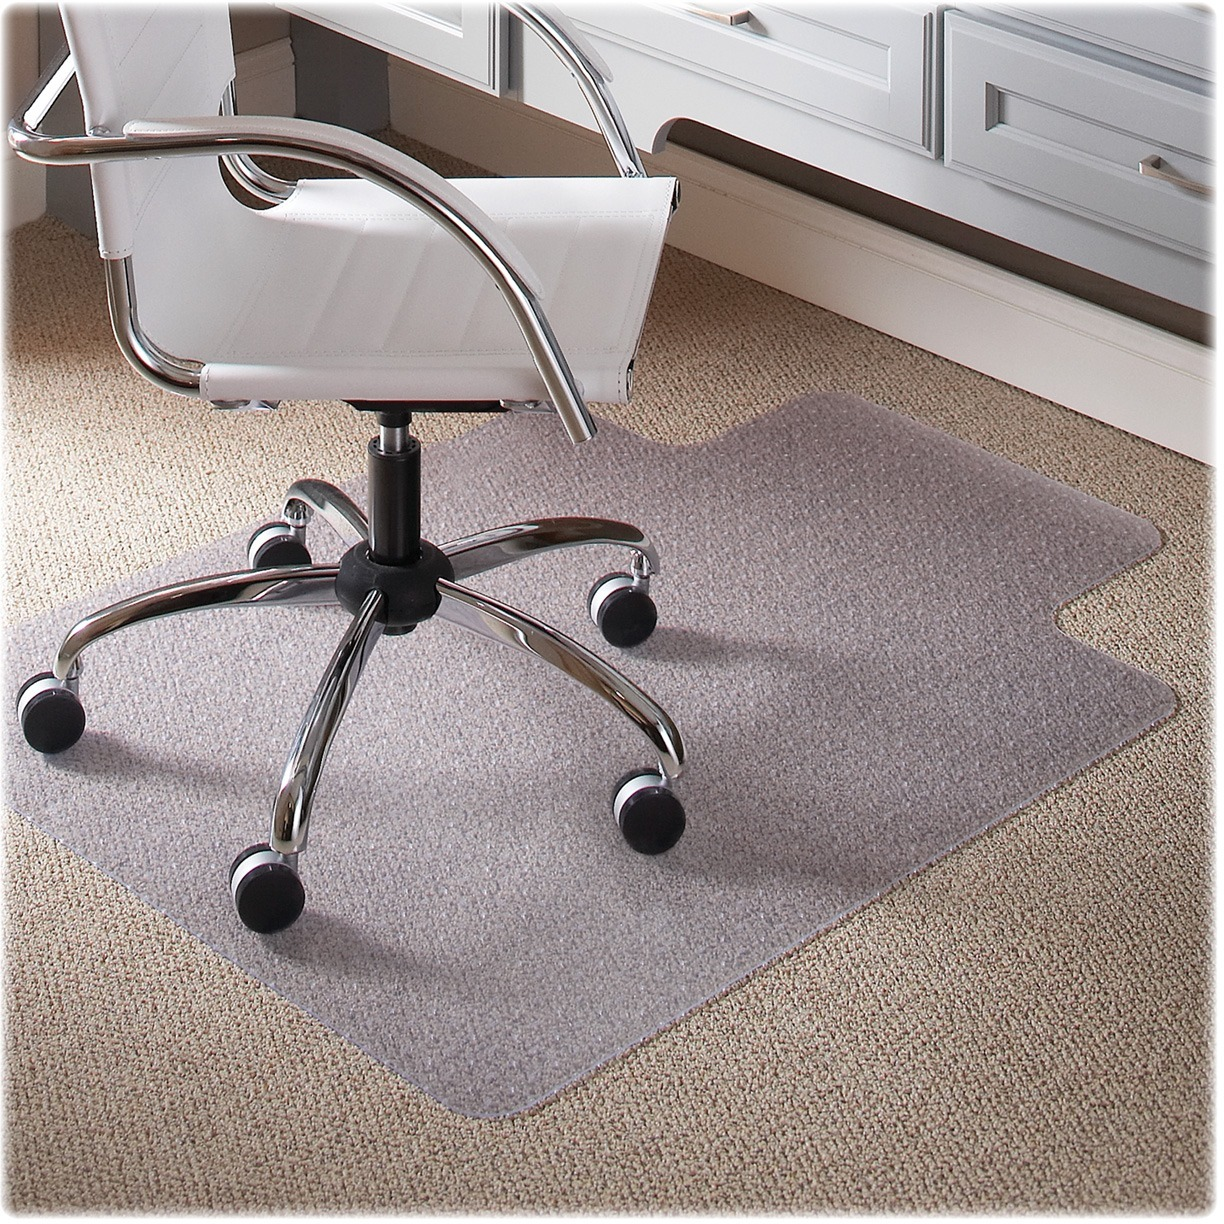 Office Chair Mats Walmart Com